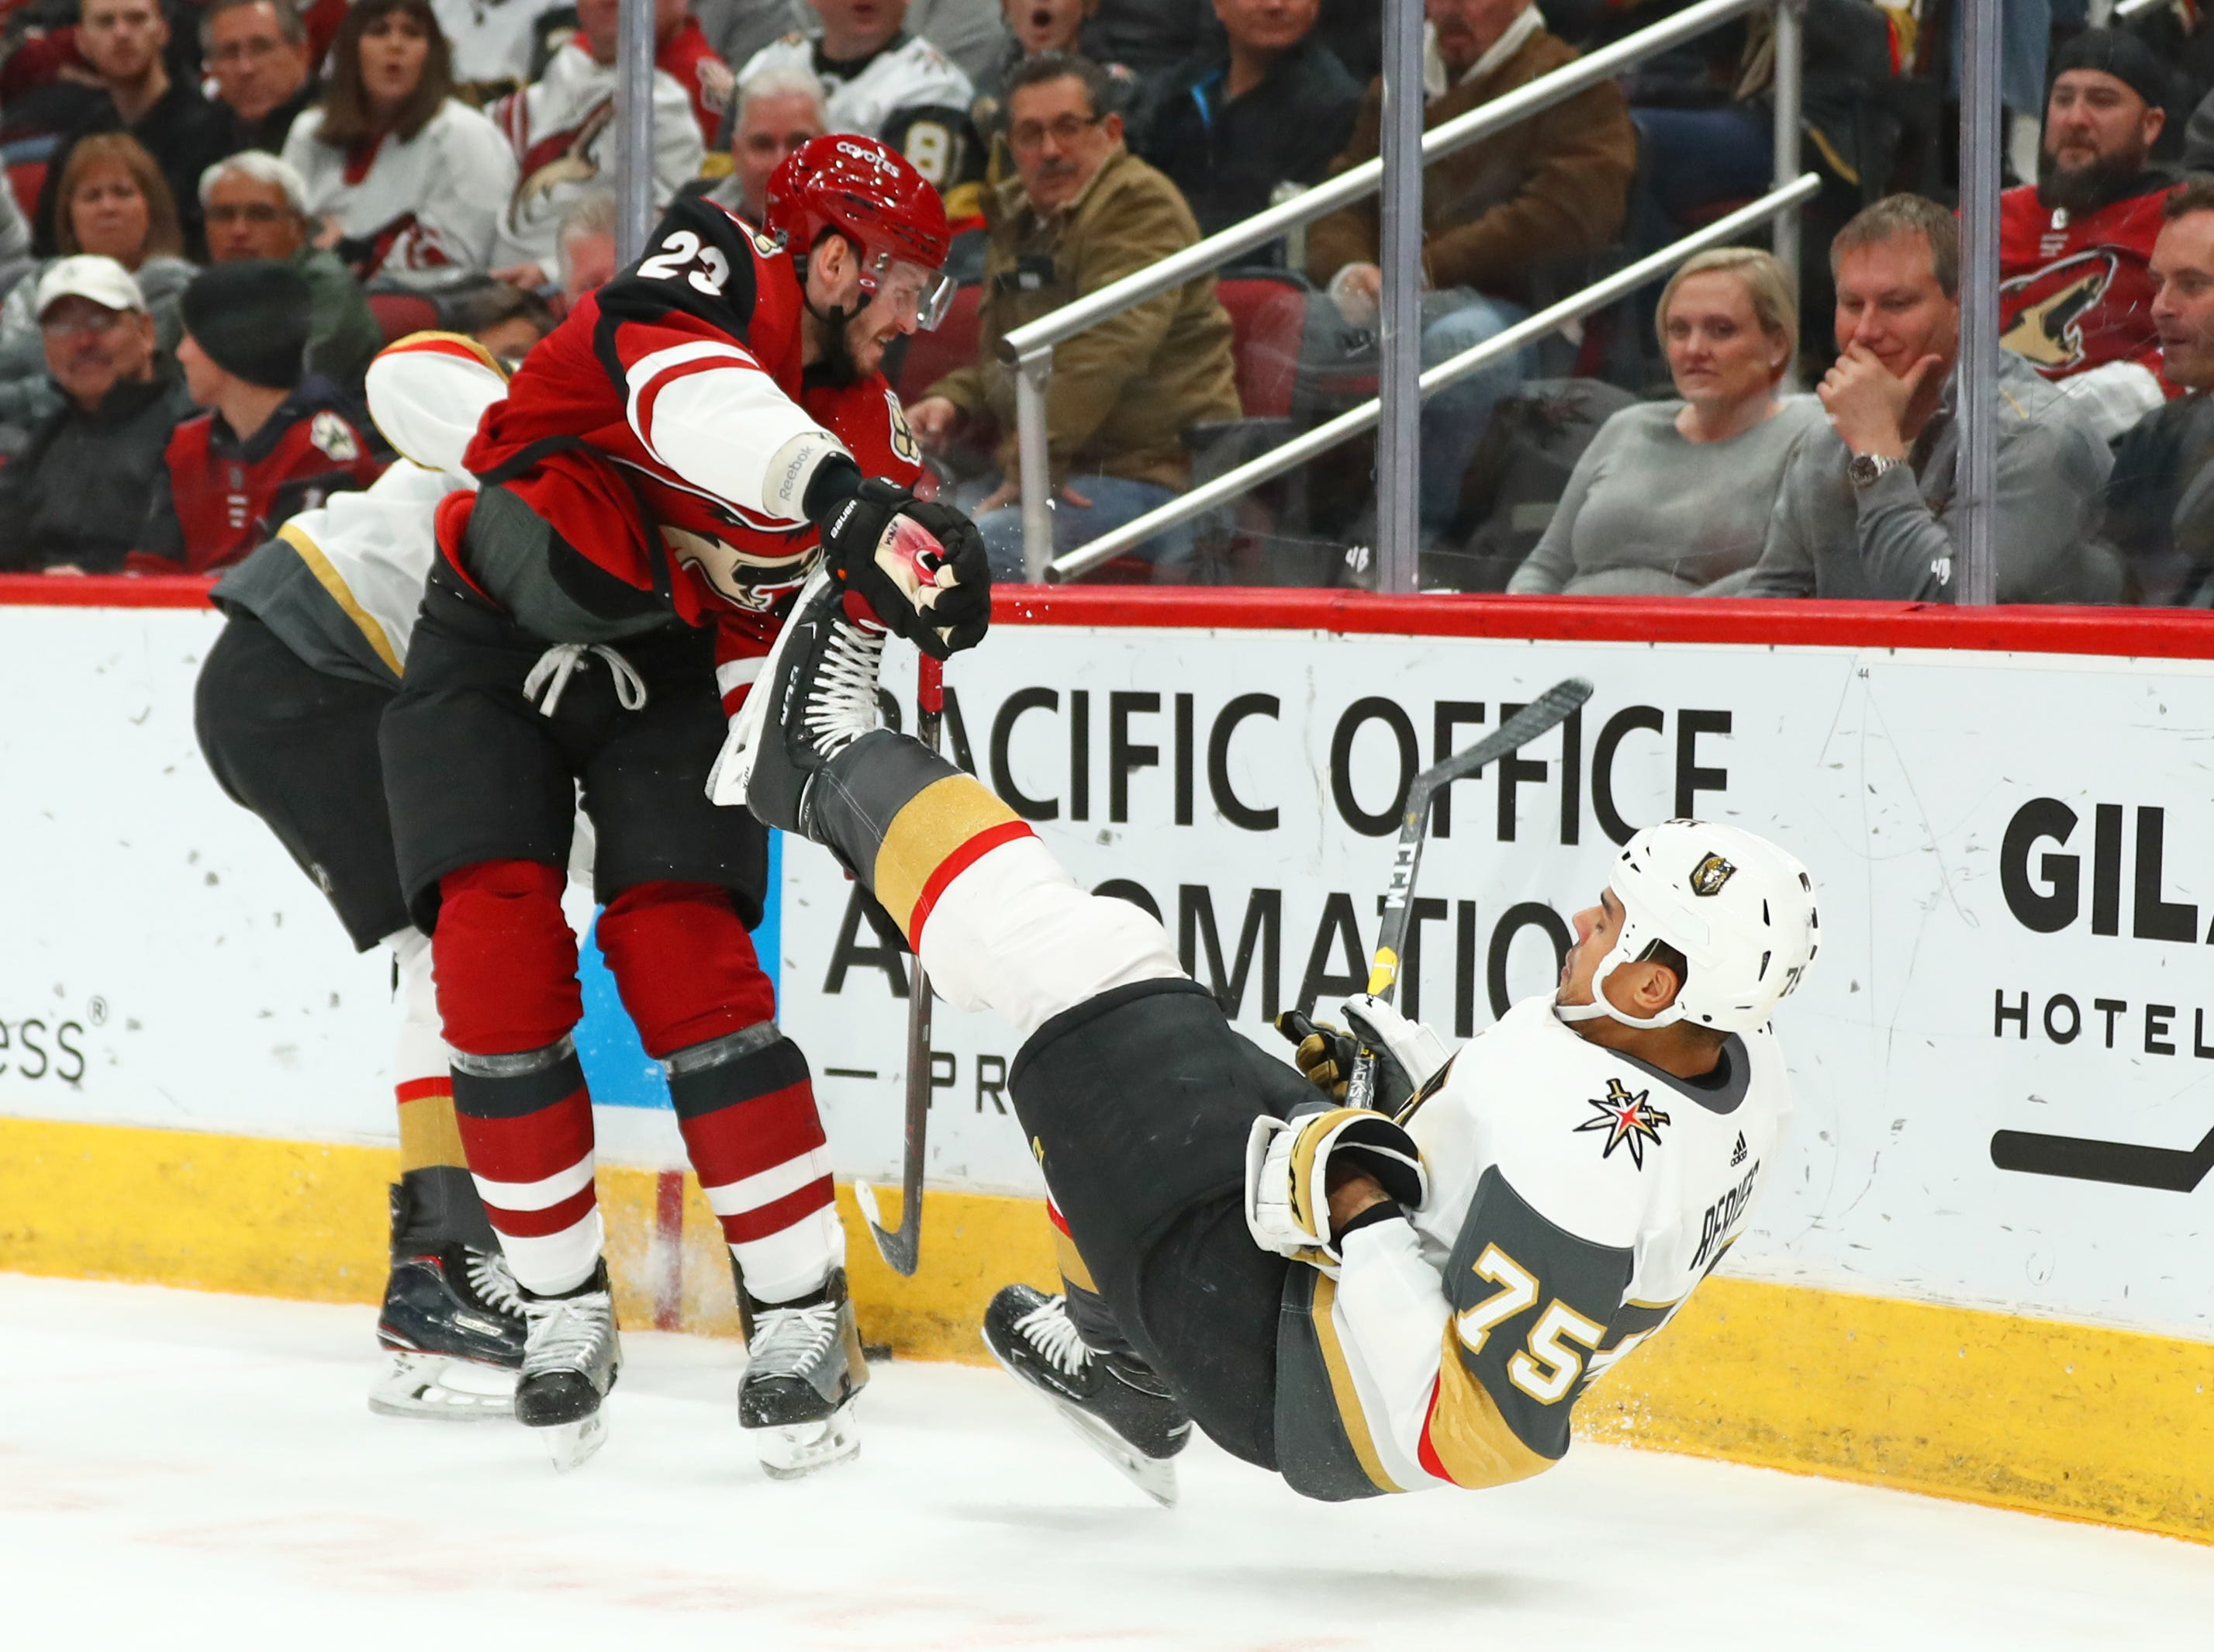 Dec 30, 2018; Glendale, AZ, USA; Vegas Golden Knights right wing Ryan Reaves (75) falls to the ice after being checked by Arizona Coyotes defenseman Oliver Ekman-Larsson (23) in the first period at Gila River Arena. Mandatory Credit: Mark J. Rebilas-USA TODAY Sports